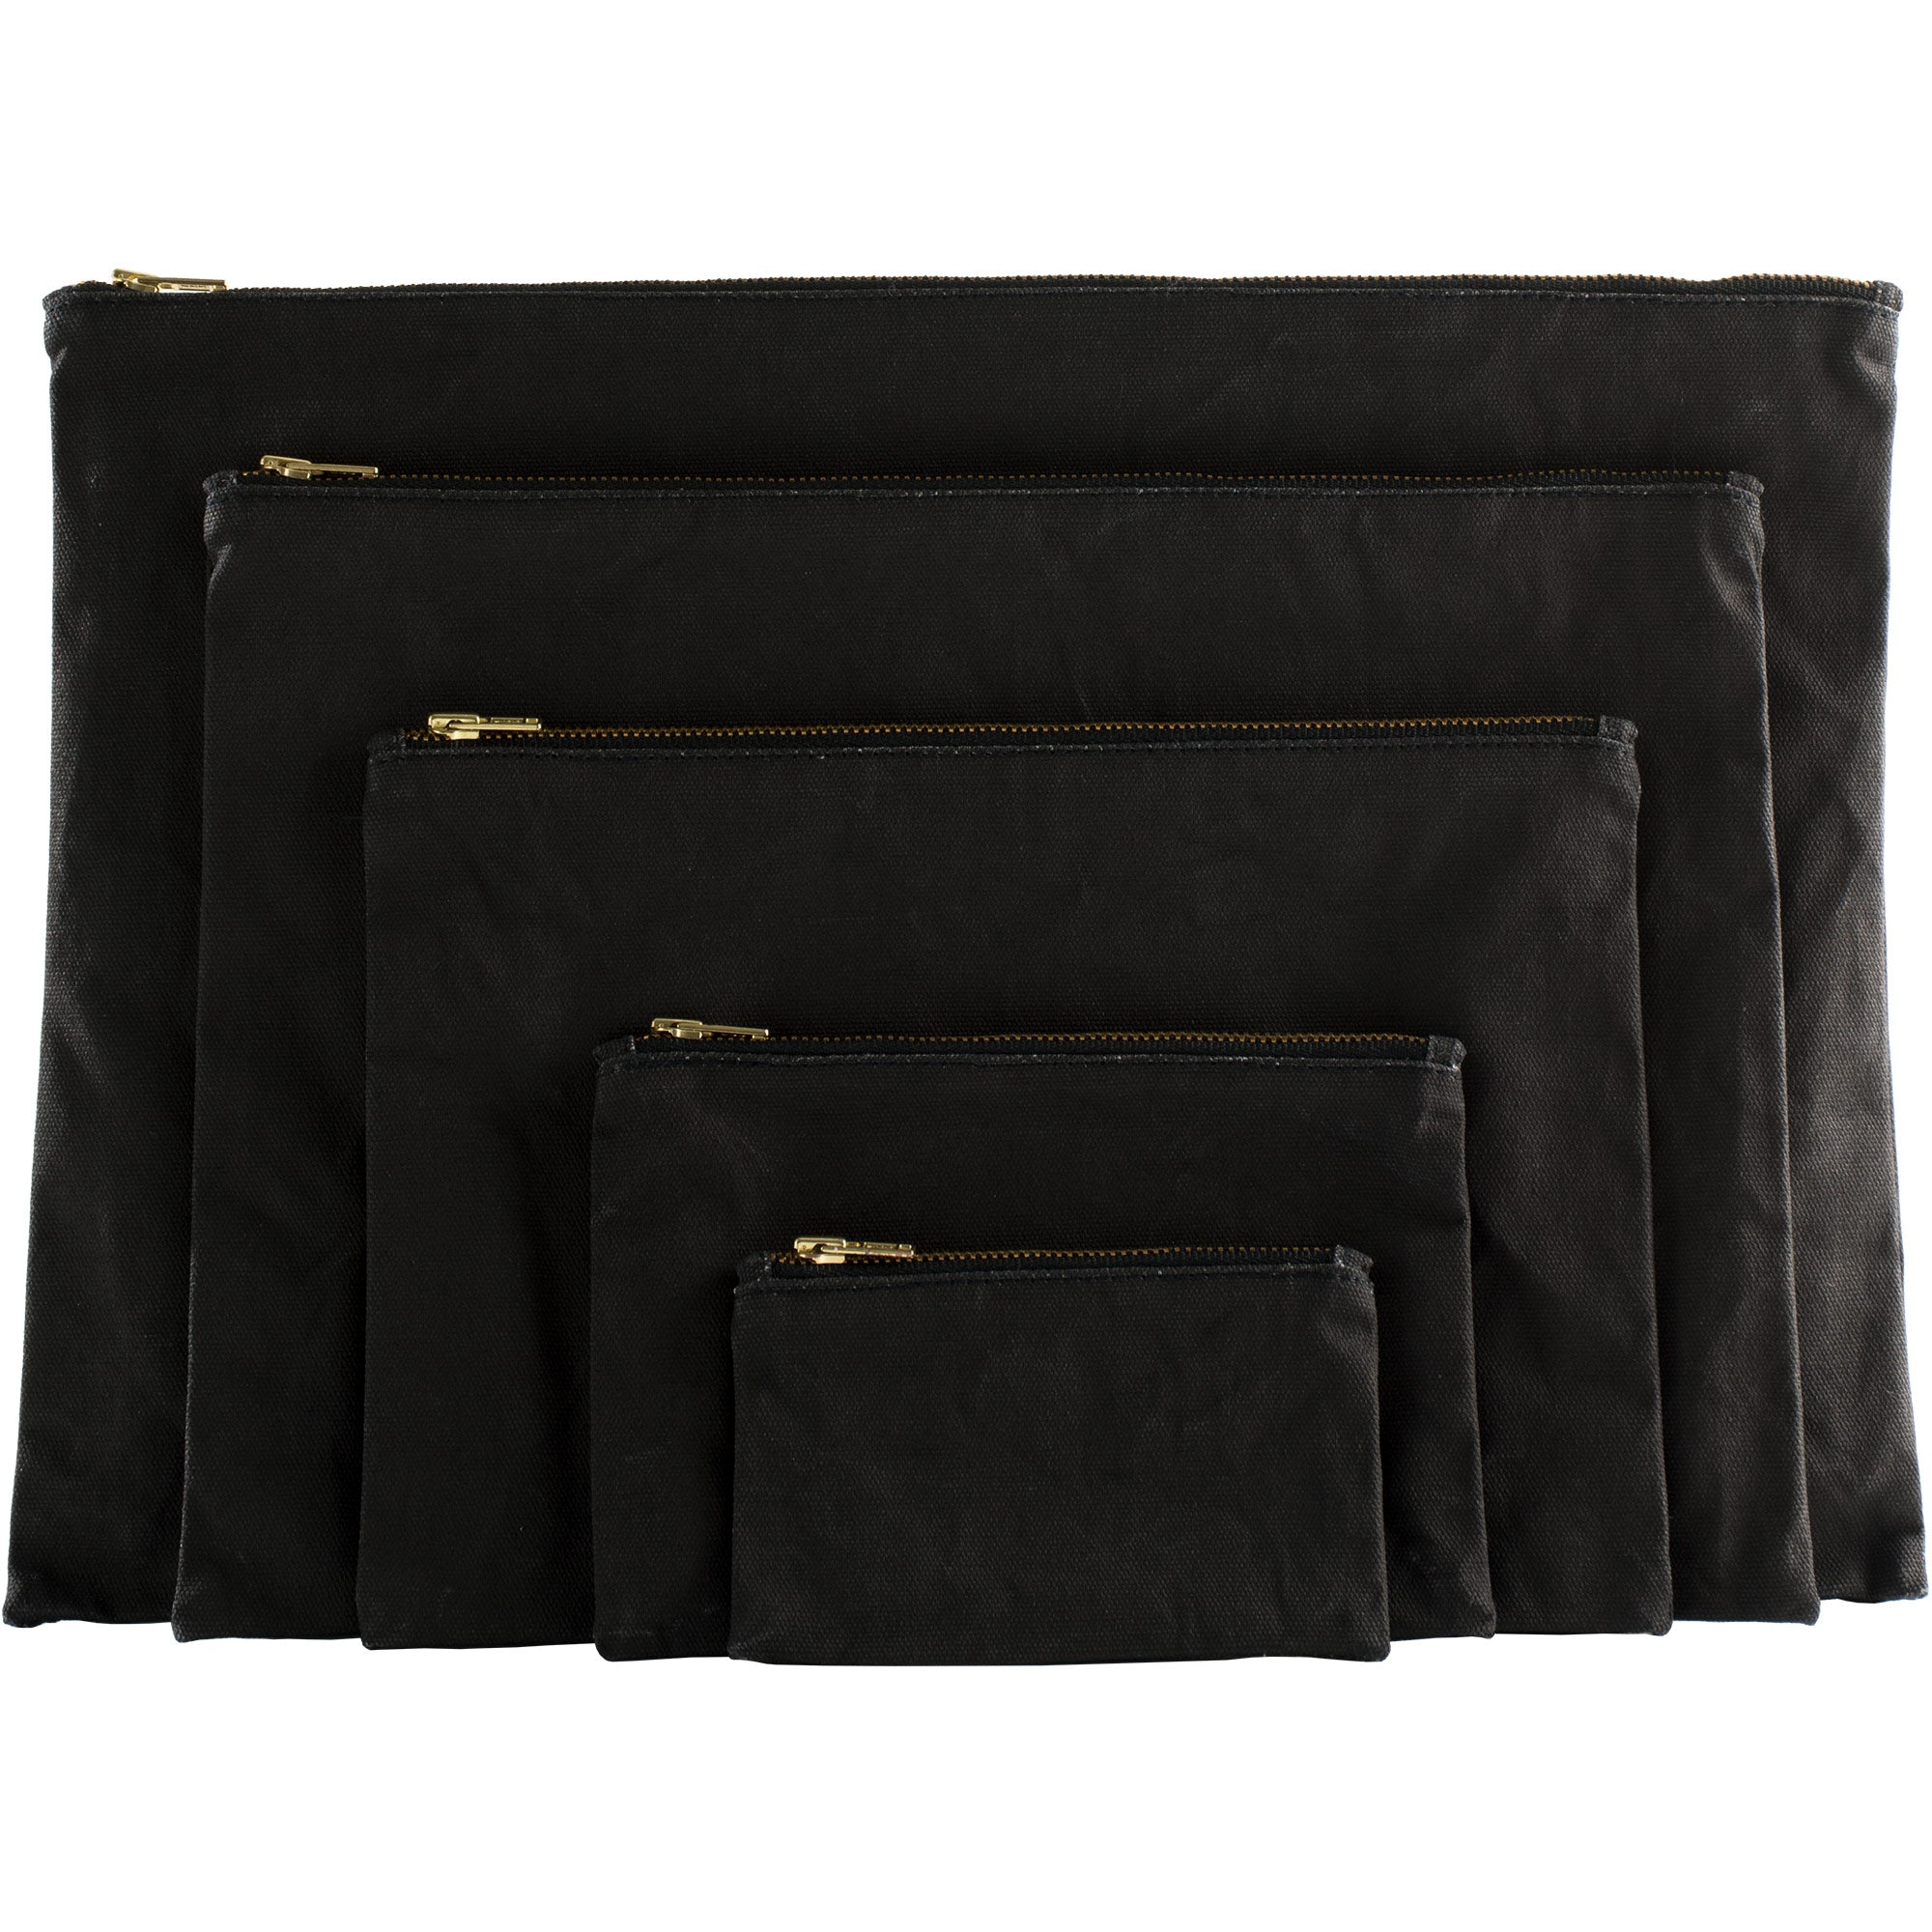 Set of Black Gesso Pouches